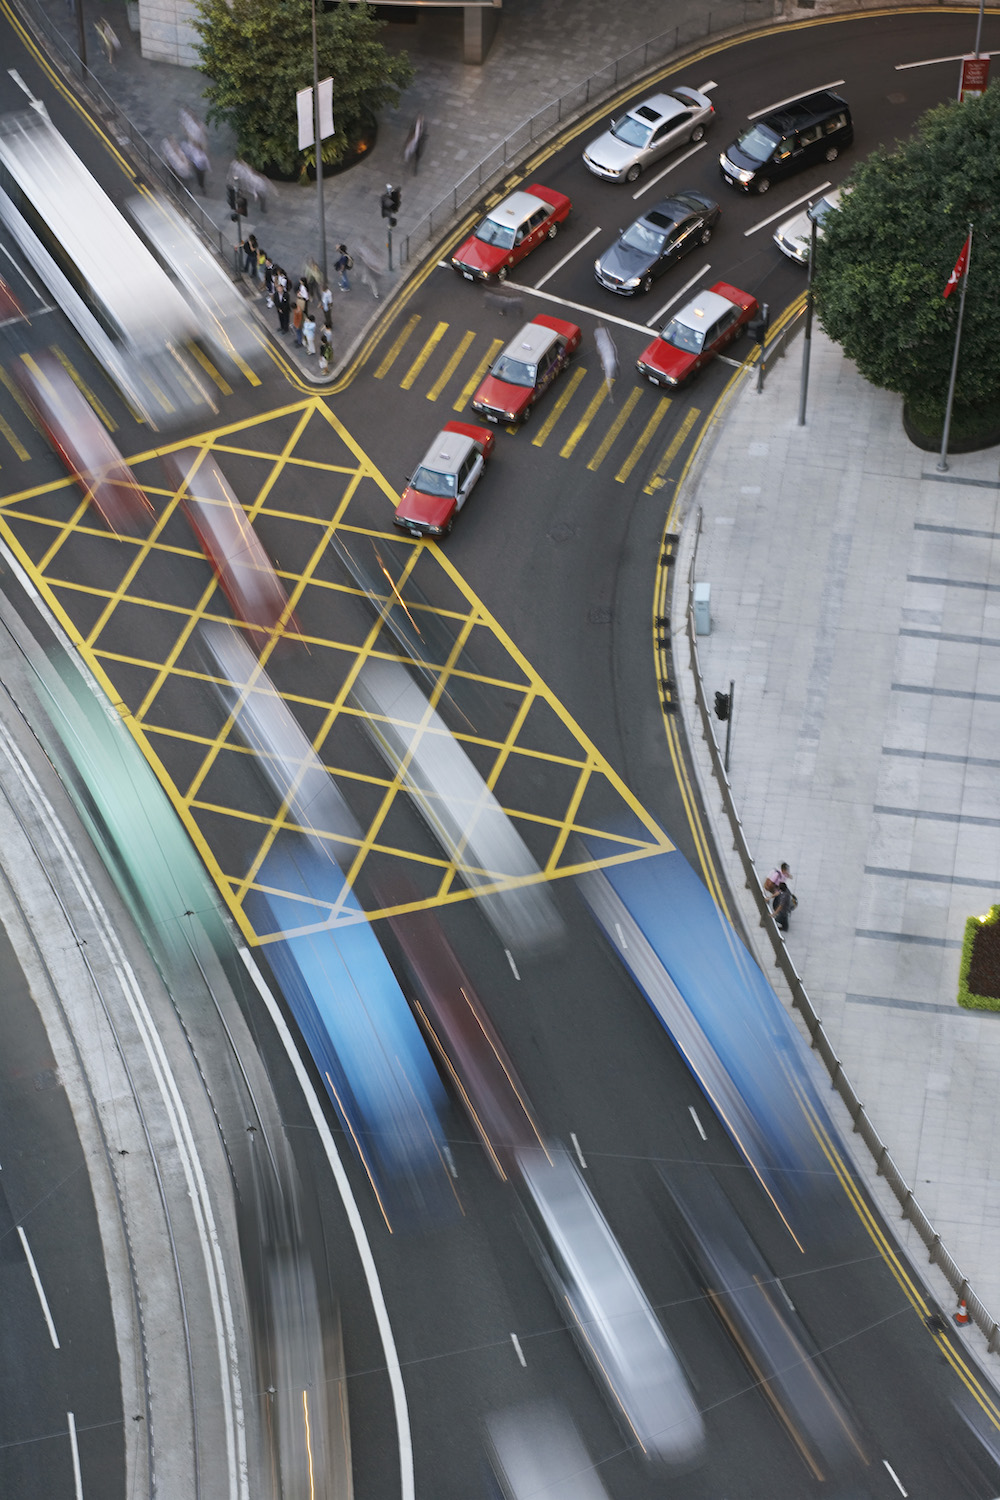 Hong Kong Taxi Tryst Exposes Online Privacy Concerns